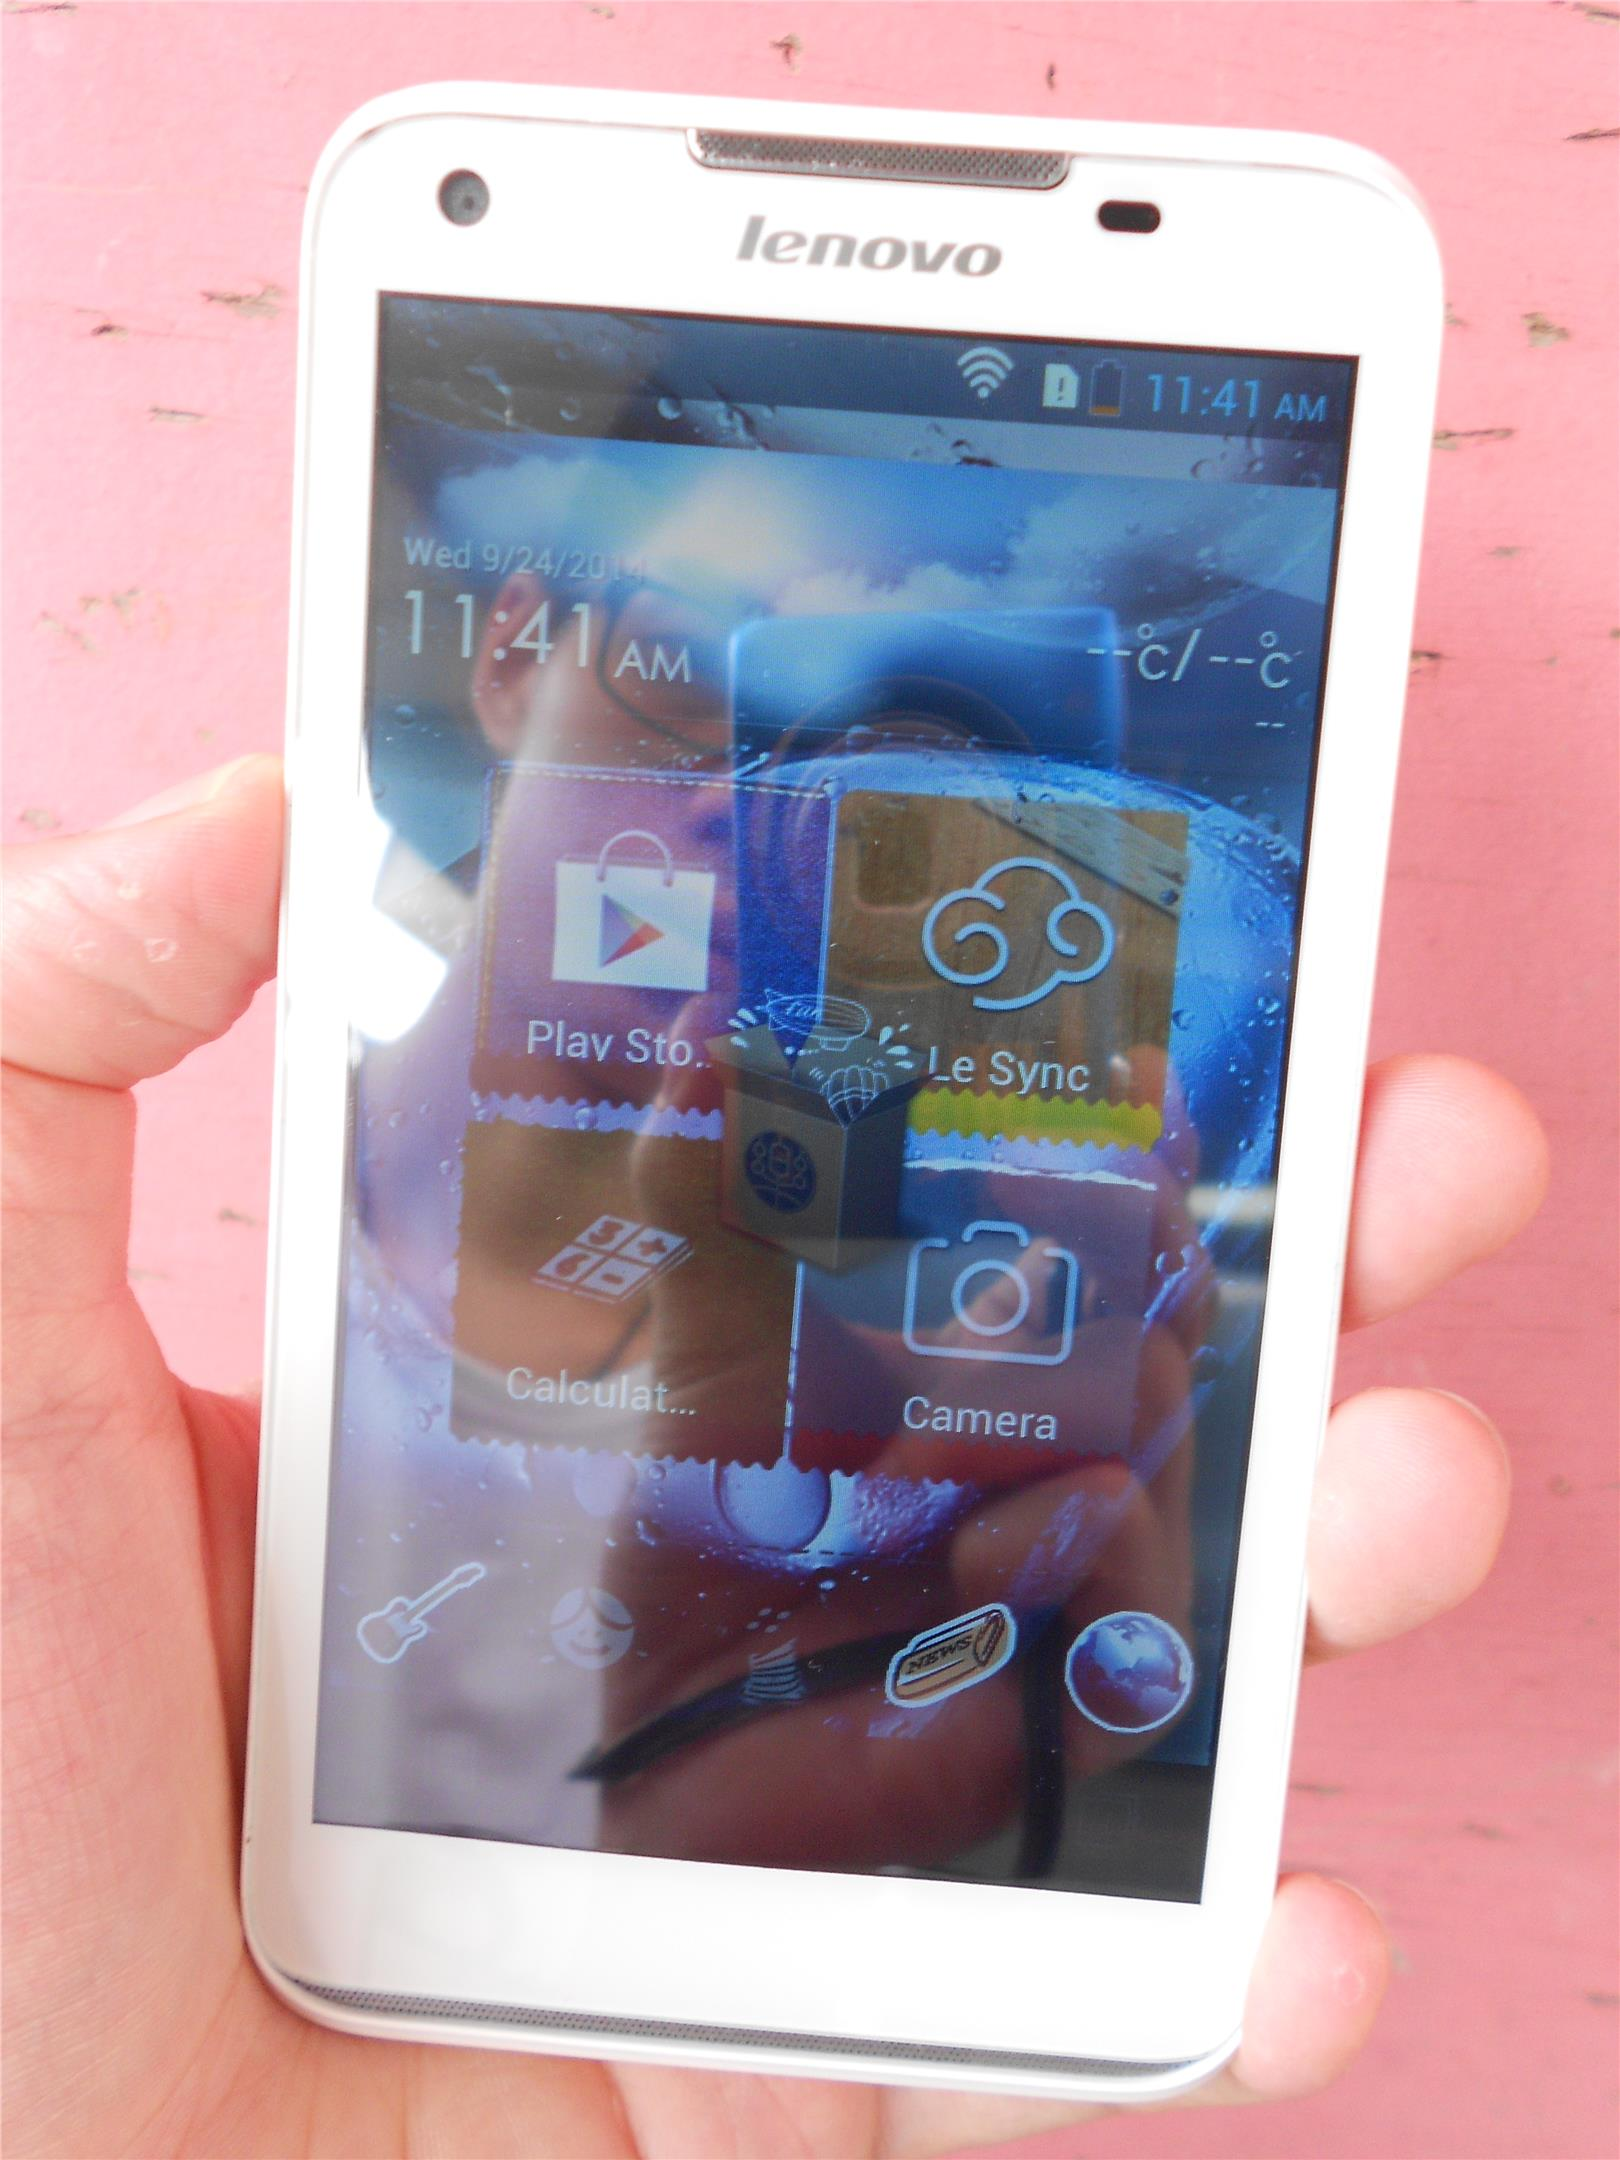 Phone Second Hand Android Phones second hand phonelenovo s880i3g5 end 282016 1115 am s880i3g5gpsandroid